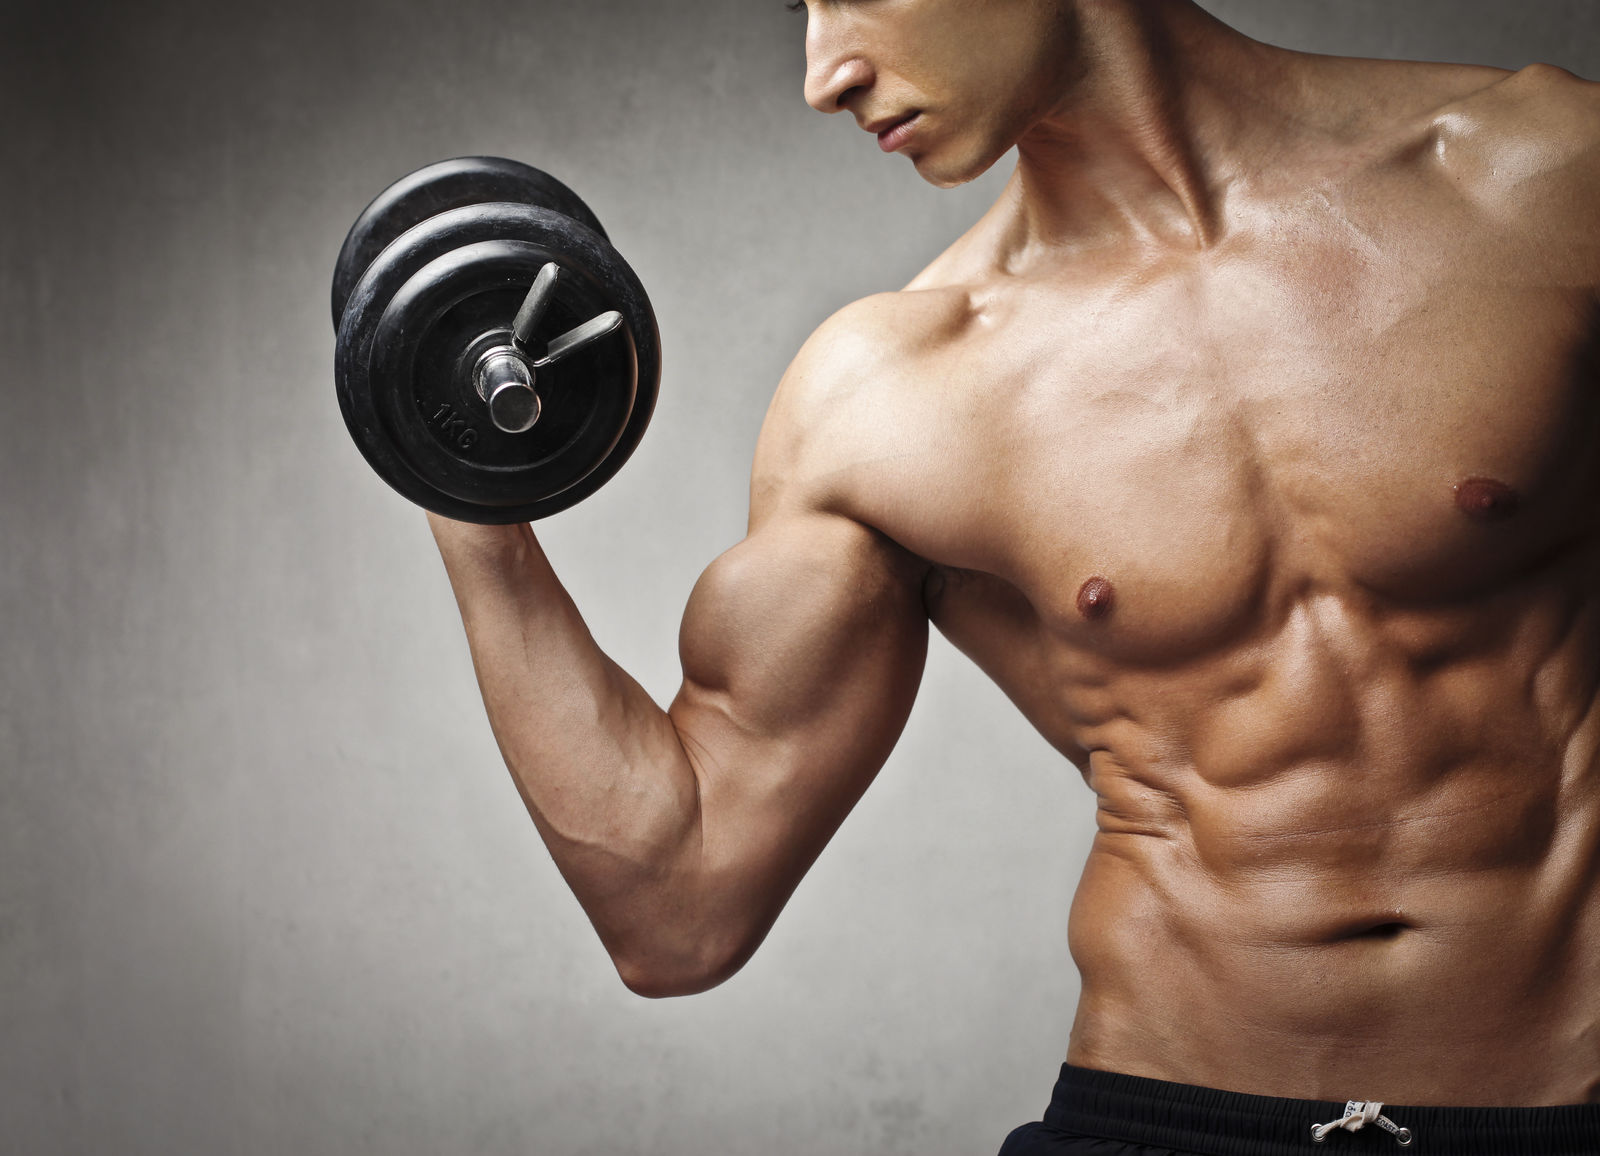 What are the major muscle groups for weight training?